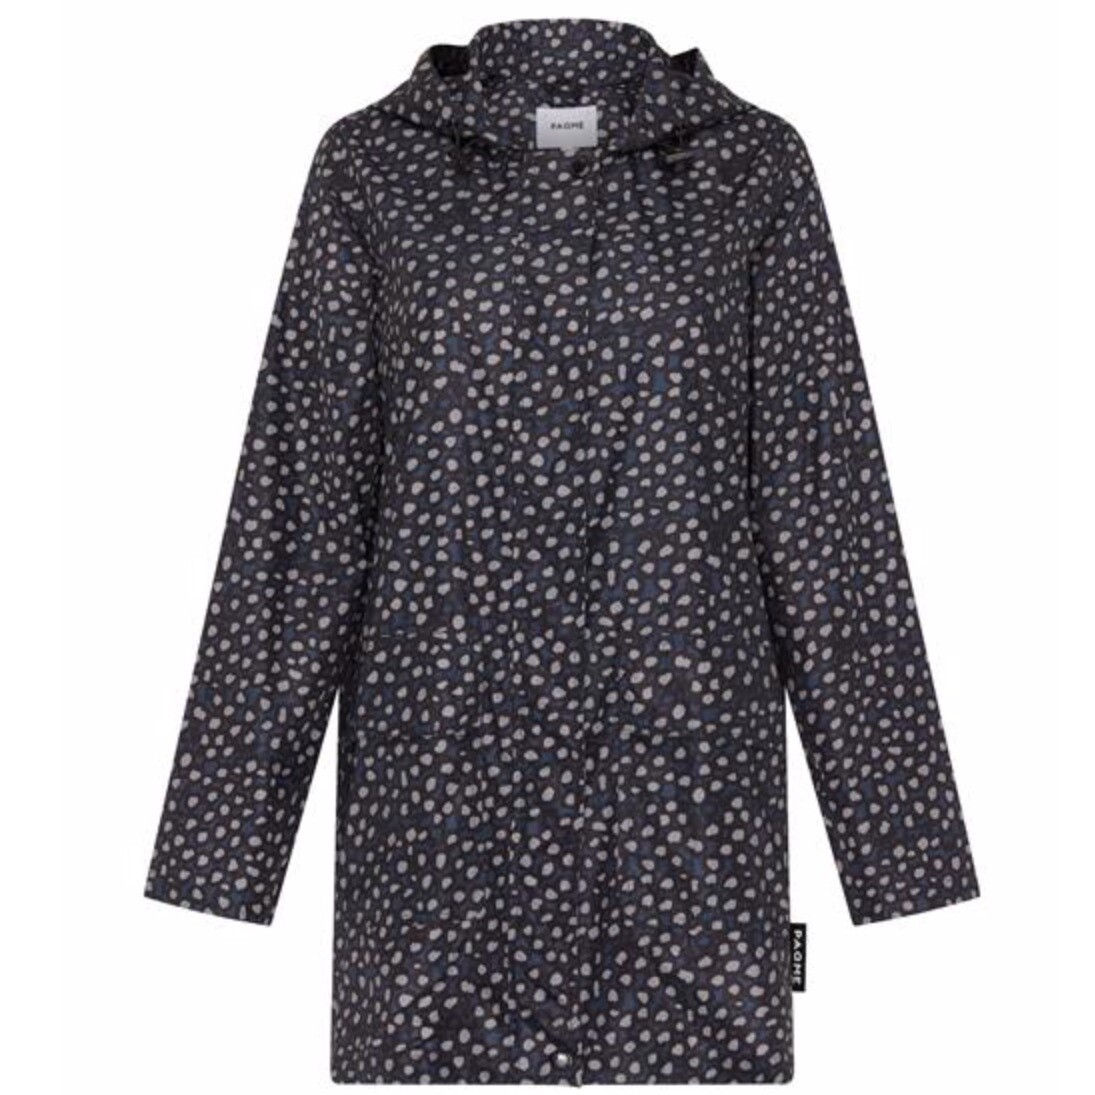 Womans Anyday Raincoat - Pebble Navy